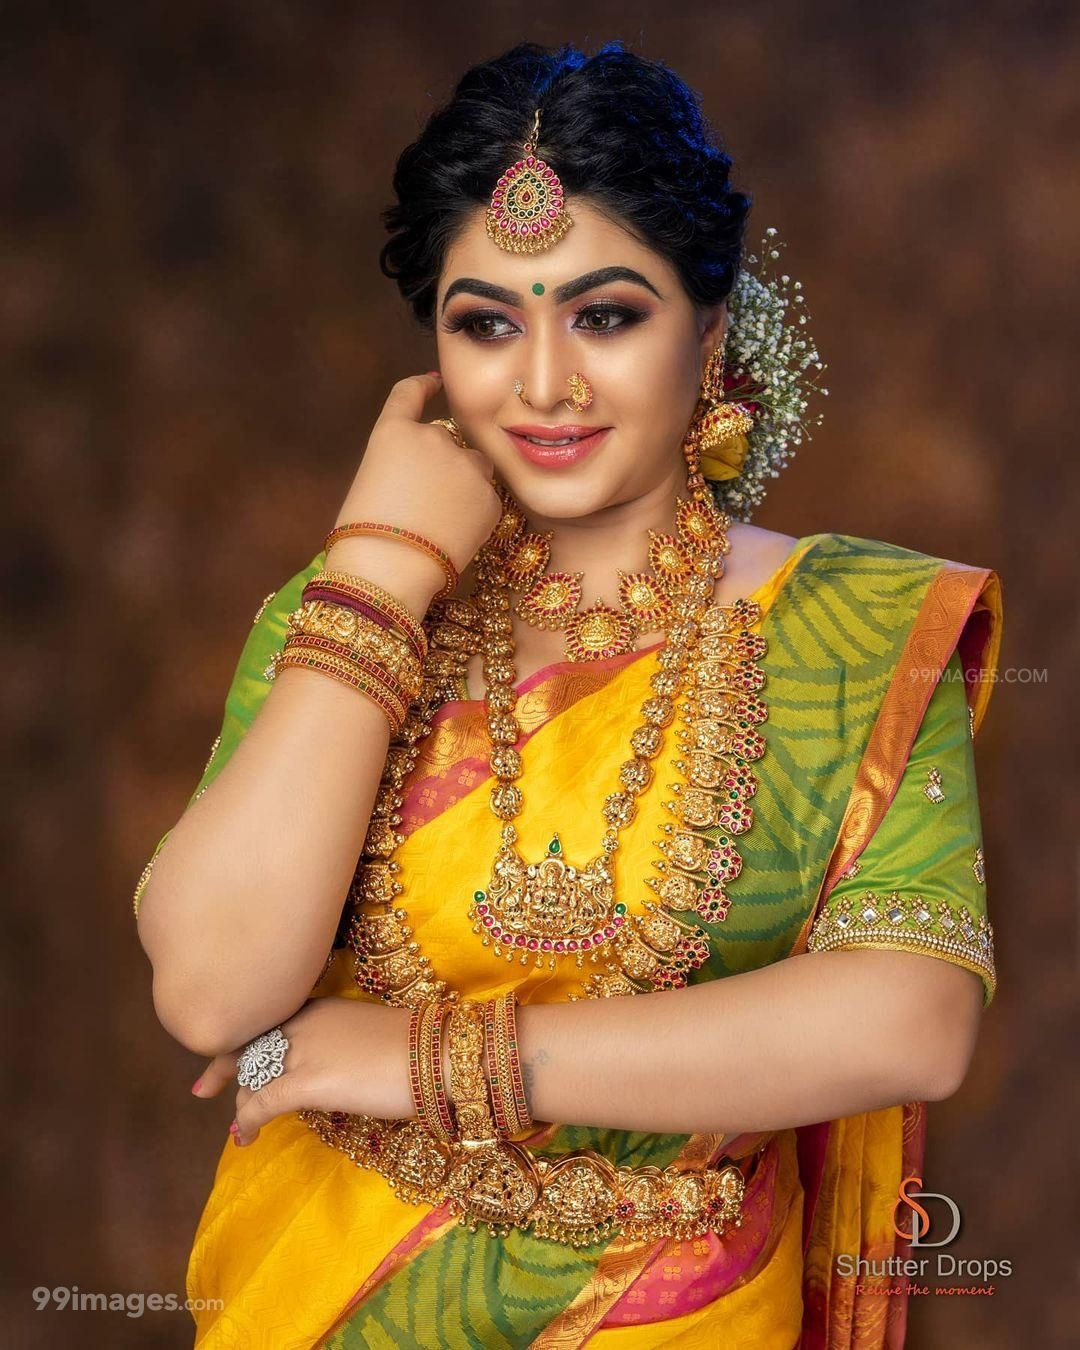 Nagasri Beautiful HD Photos & Mobile Wallpapers HD (Android/iPhone) (1080p)